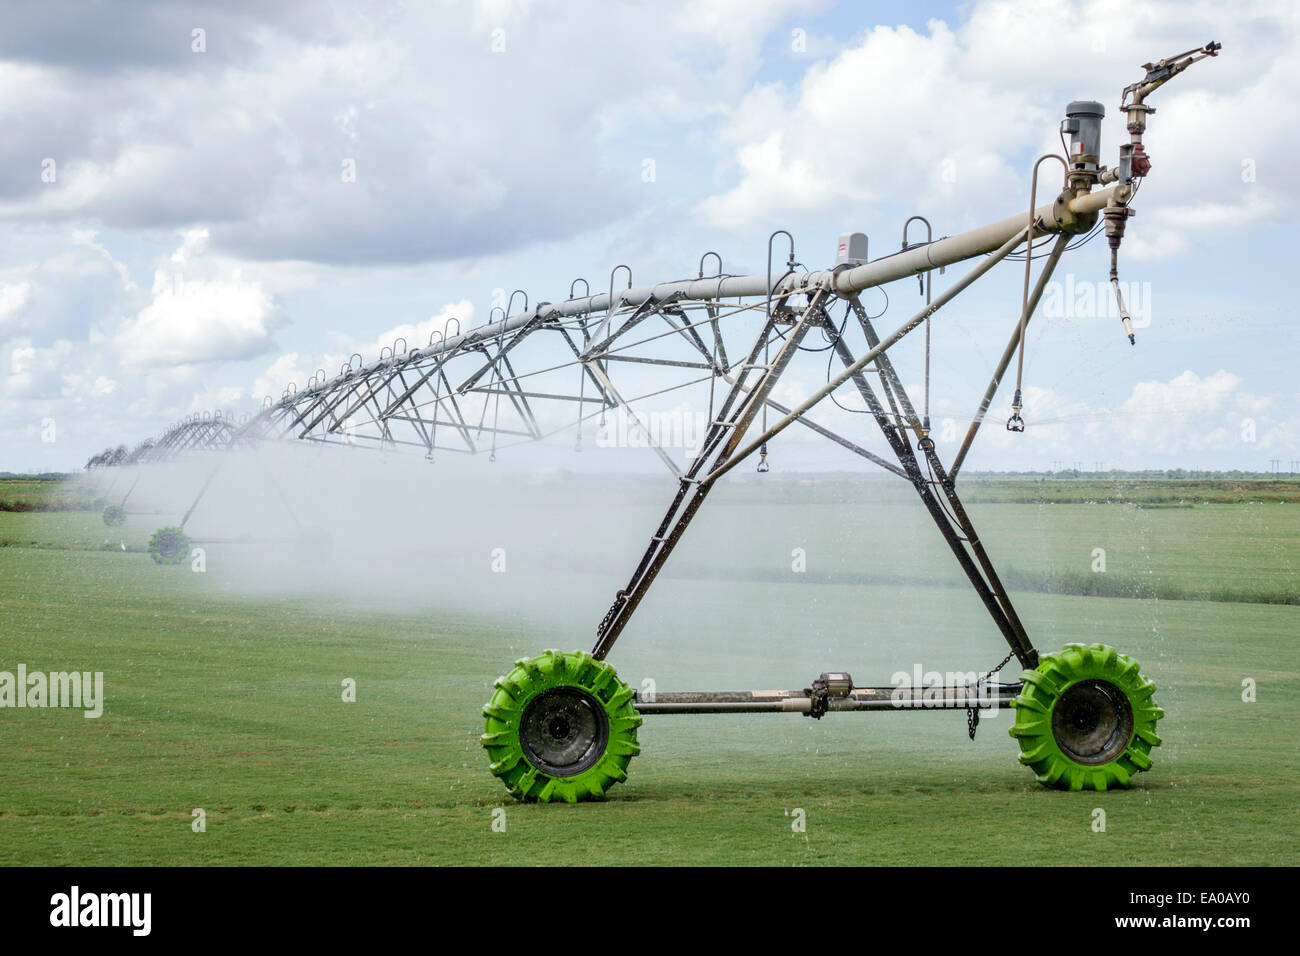 Florida Indiantown center pivot irrigation equipment centre automated turf farm grass irrigating water - Stock Image